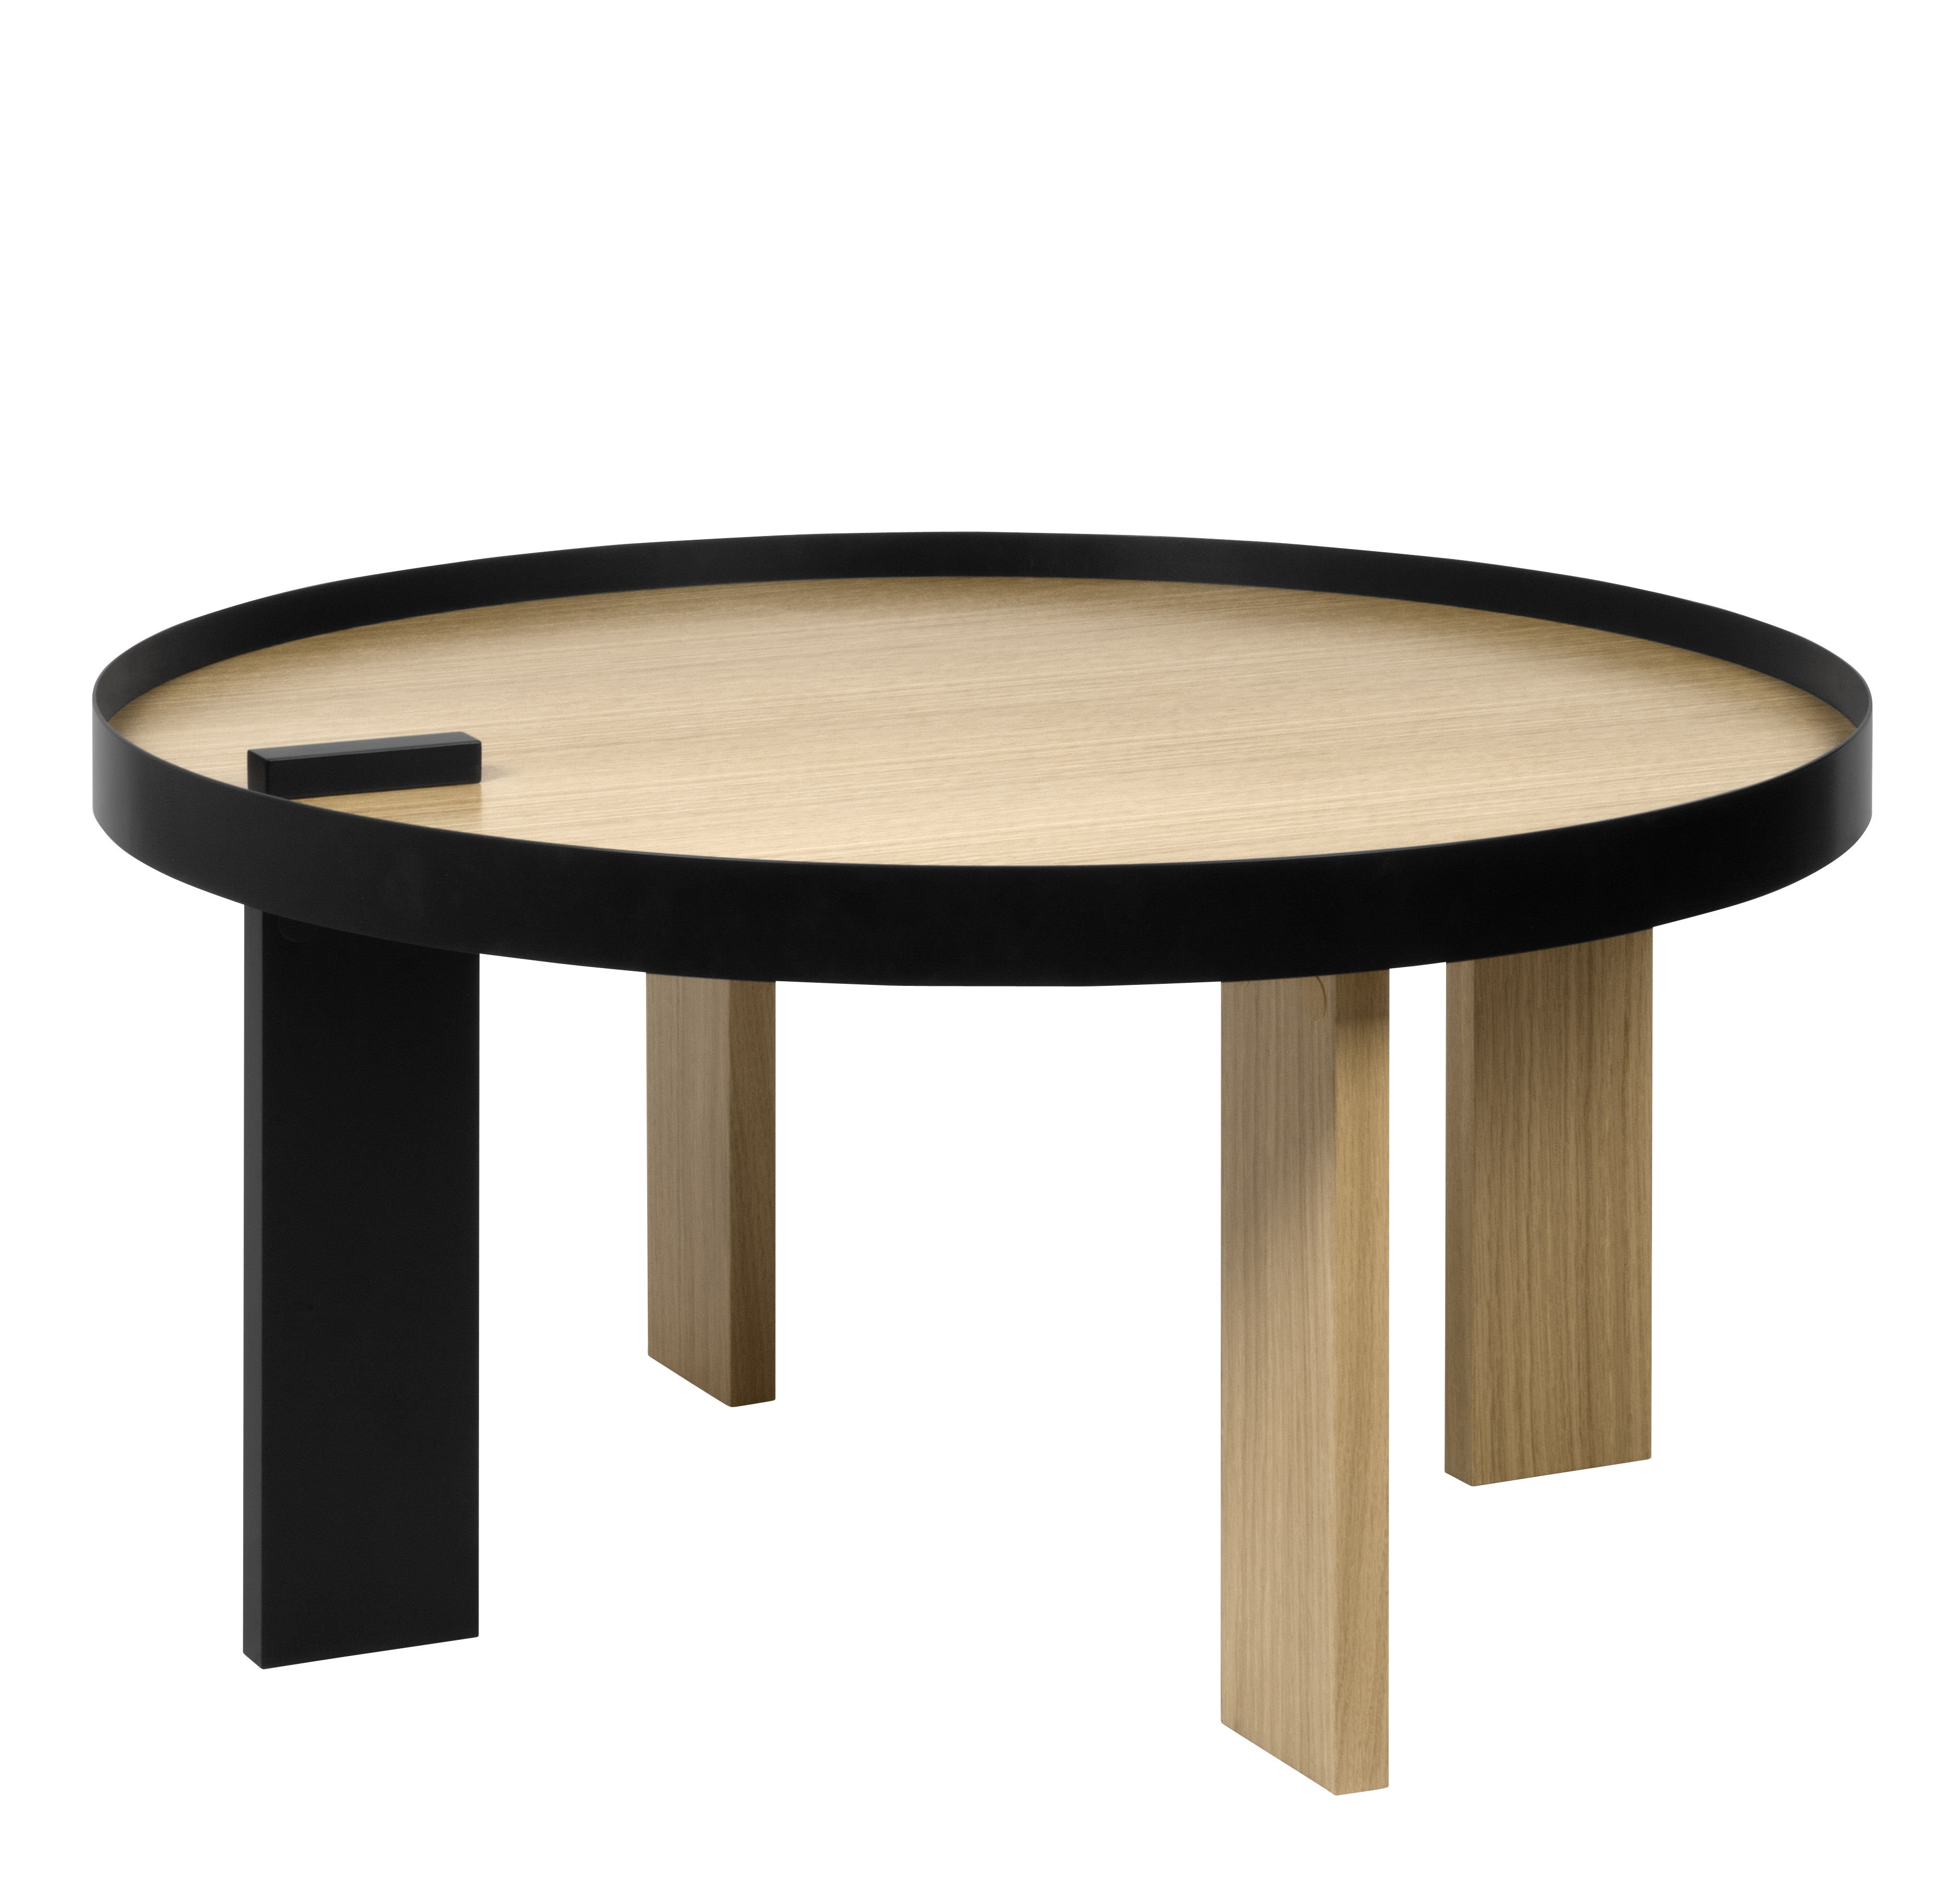 Furniture - Coffee Tables - Tokyo Coffee table - / Wood & Metal - Ø 80 x H 42 cm by POP UP HOME - Oak & black - Honeycomb panels, Lacquered metal